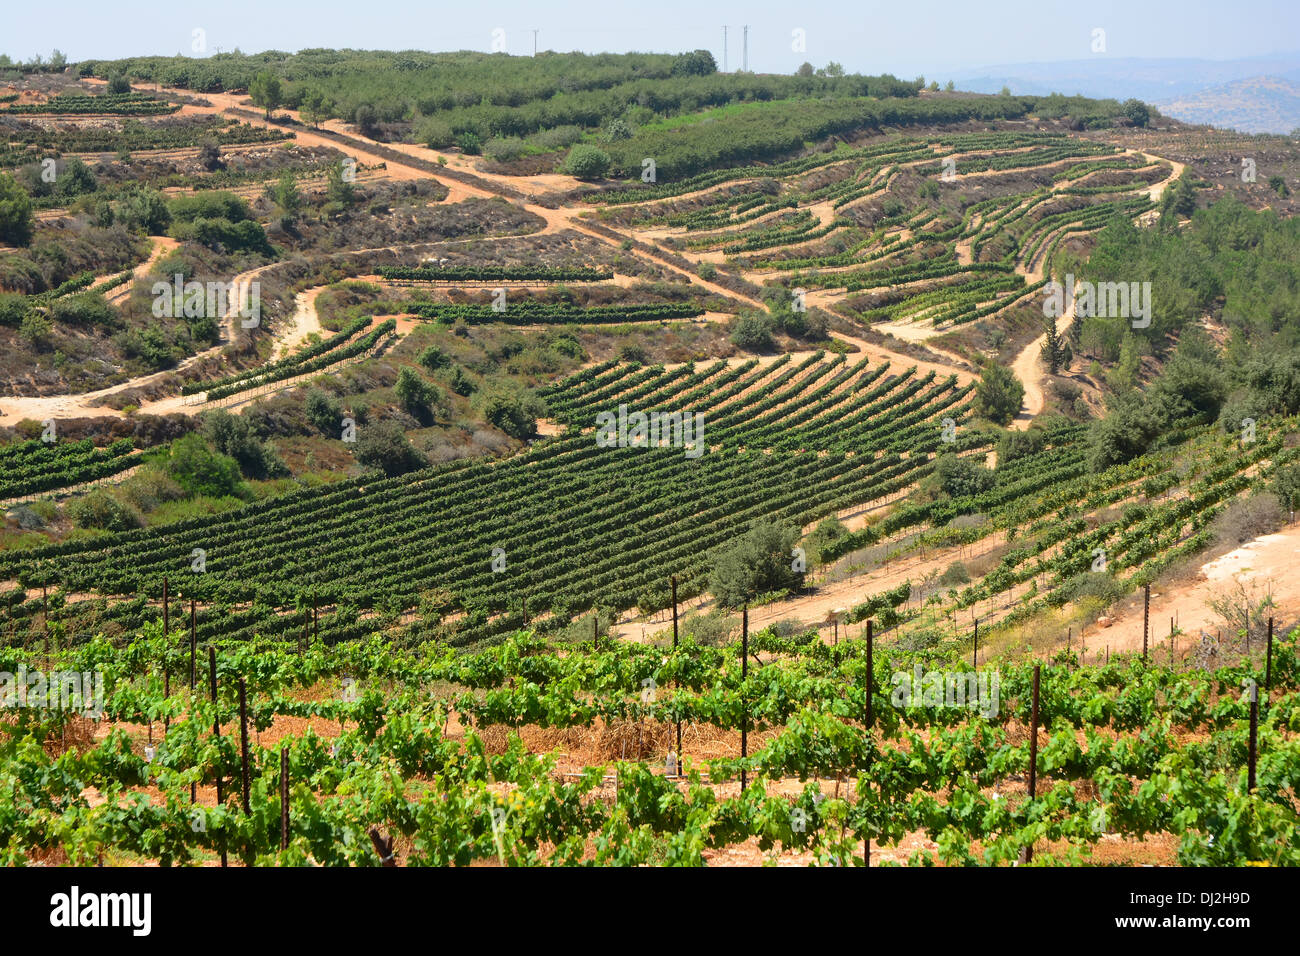 Vineyards on the hills of Gush Etzion, Israel - Stock Image